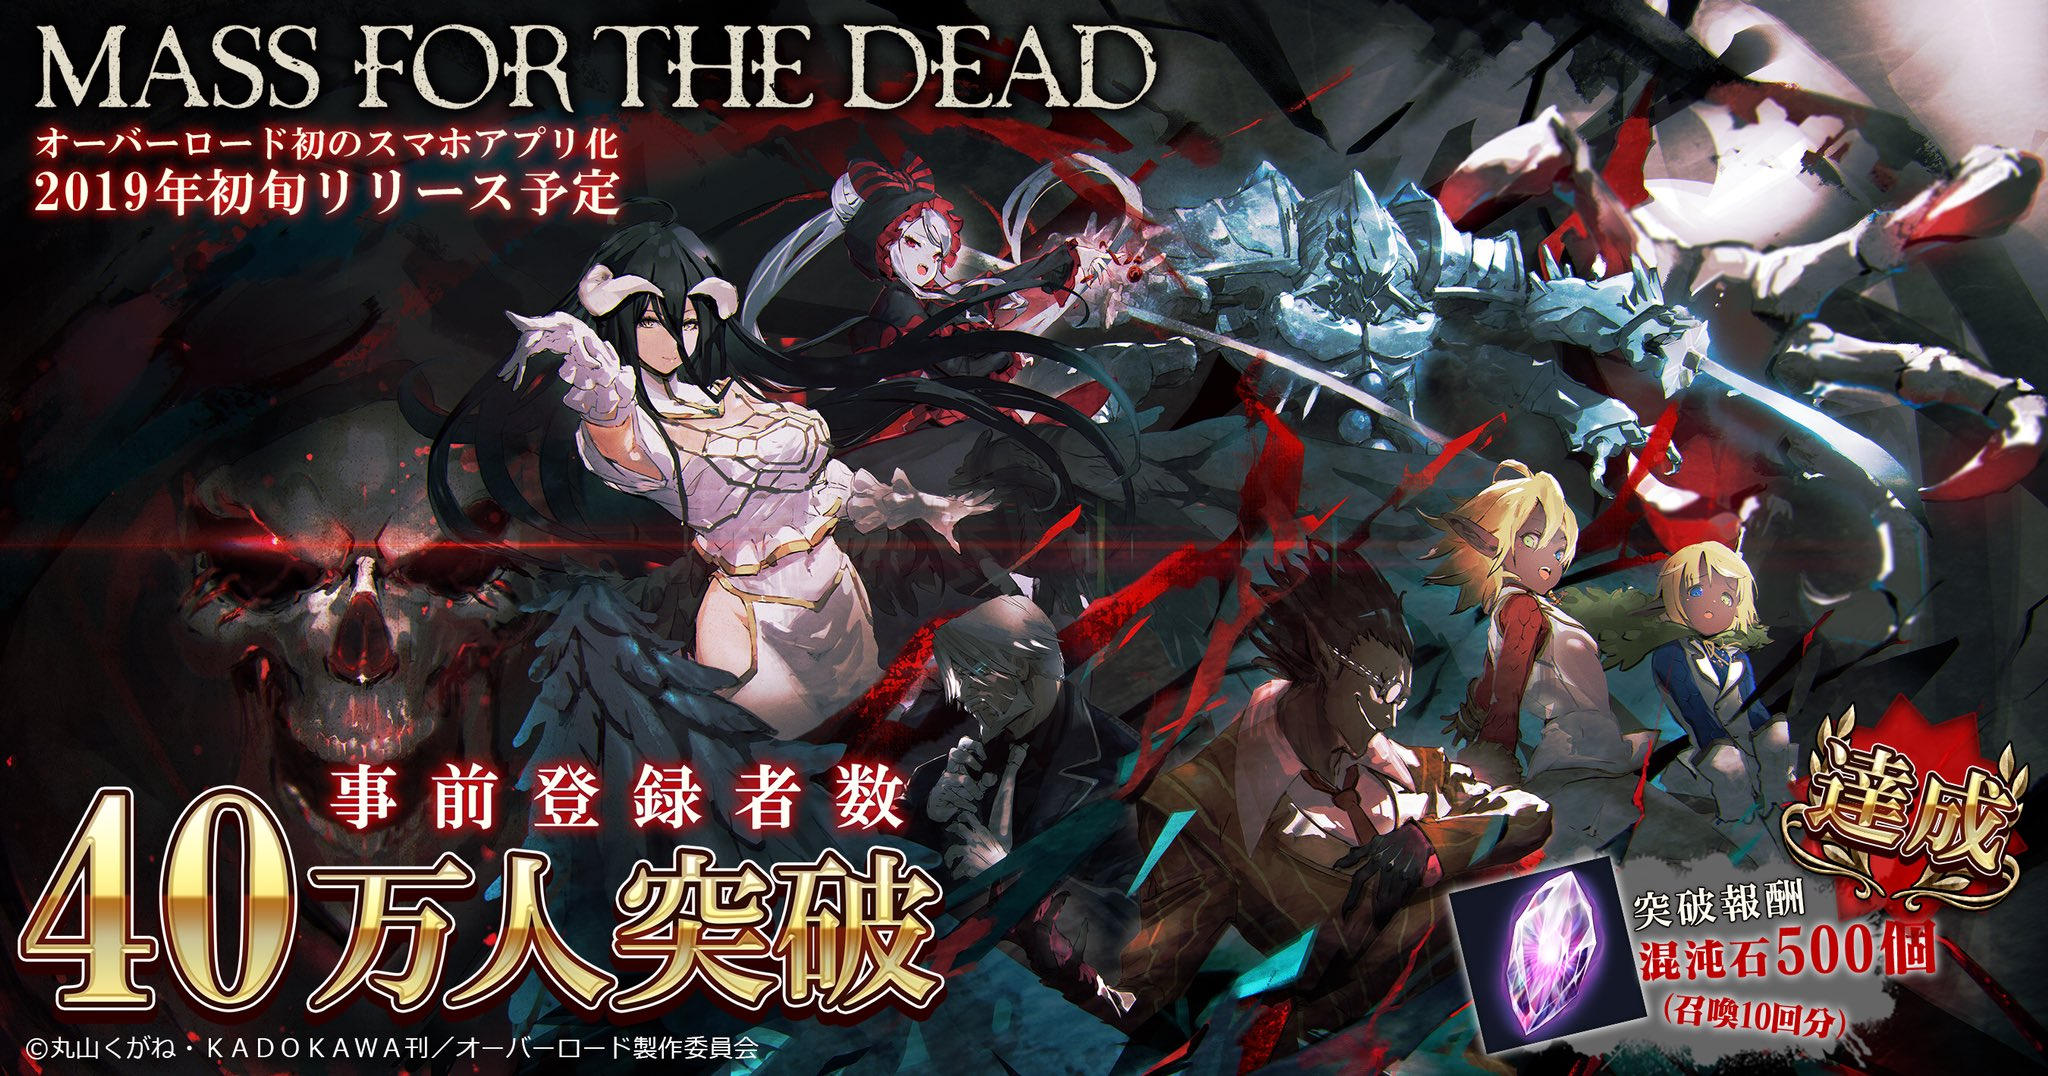 Exys新作《MASS FOR THE DEAD》推迟至2019年初发布 1